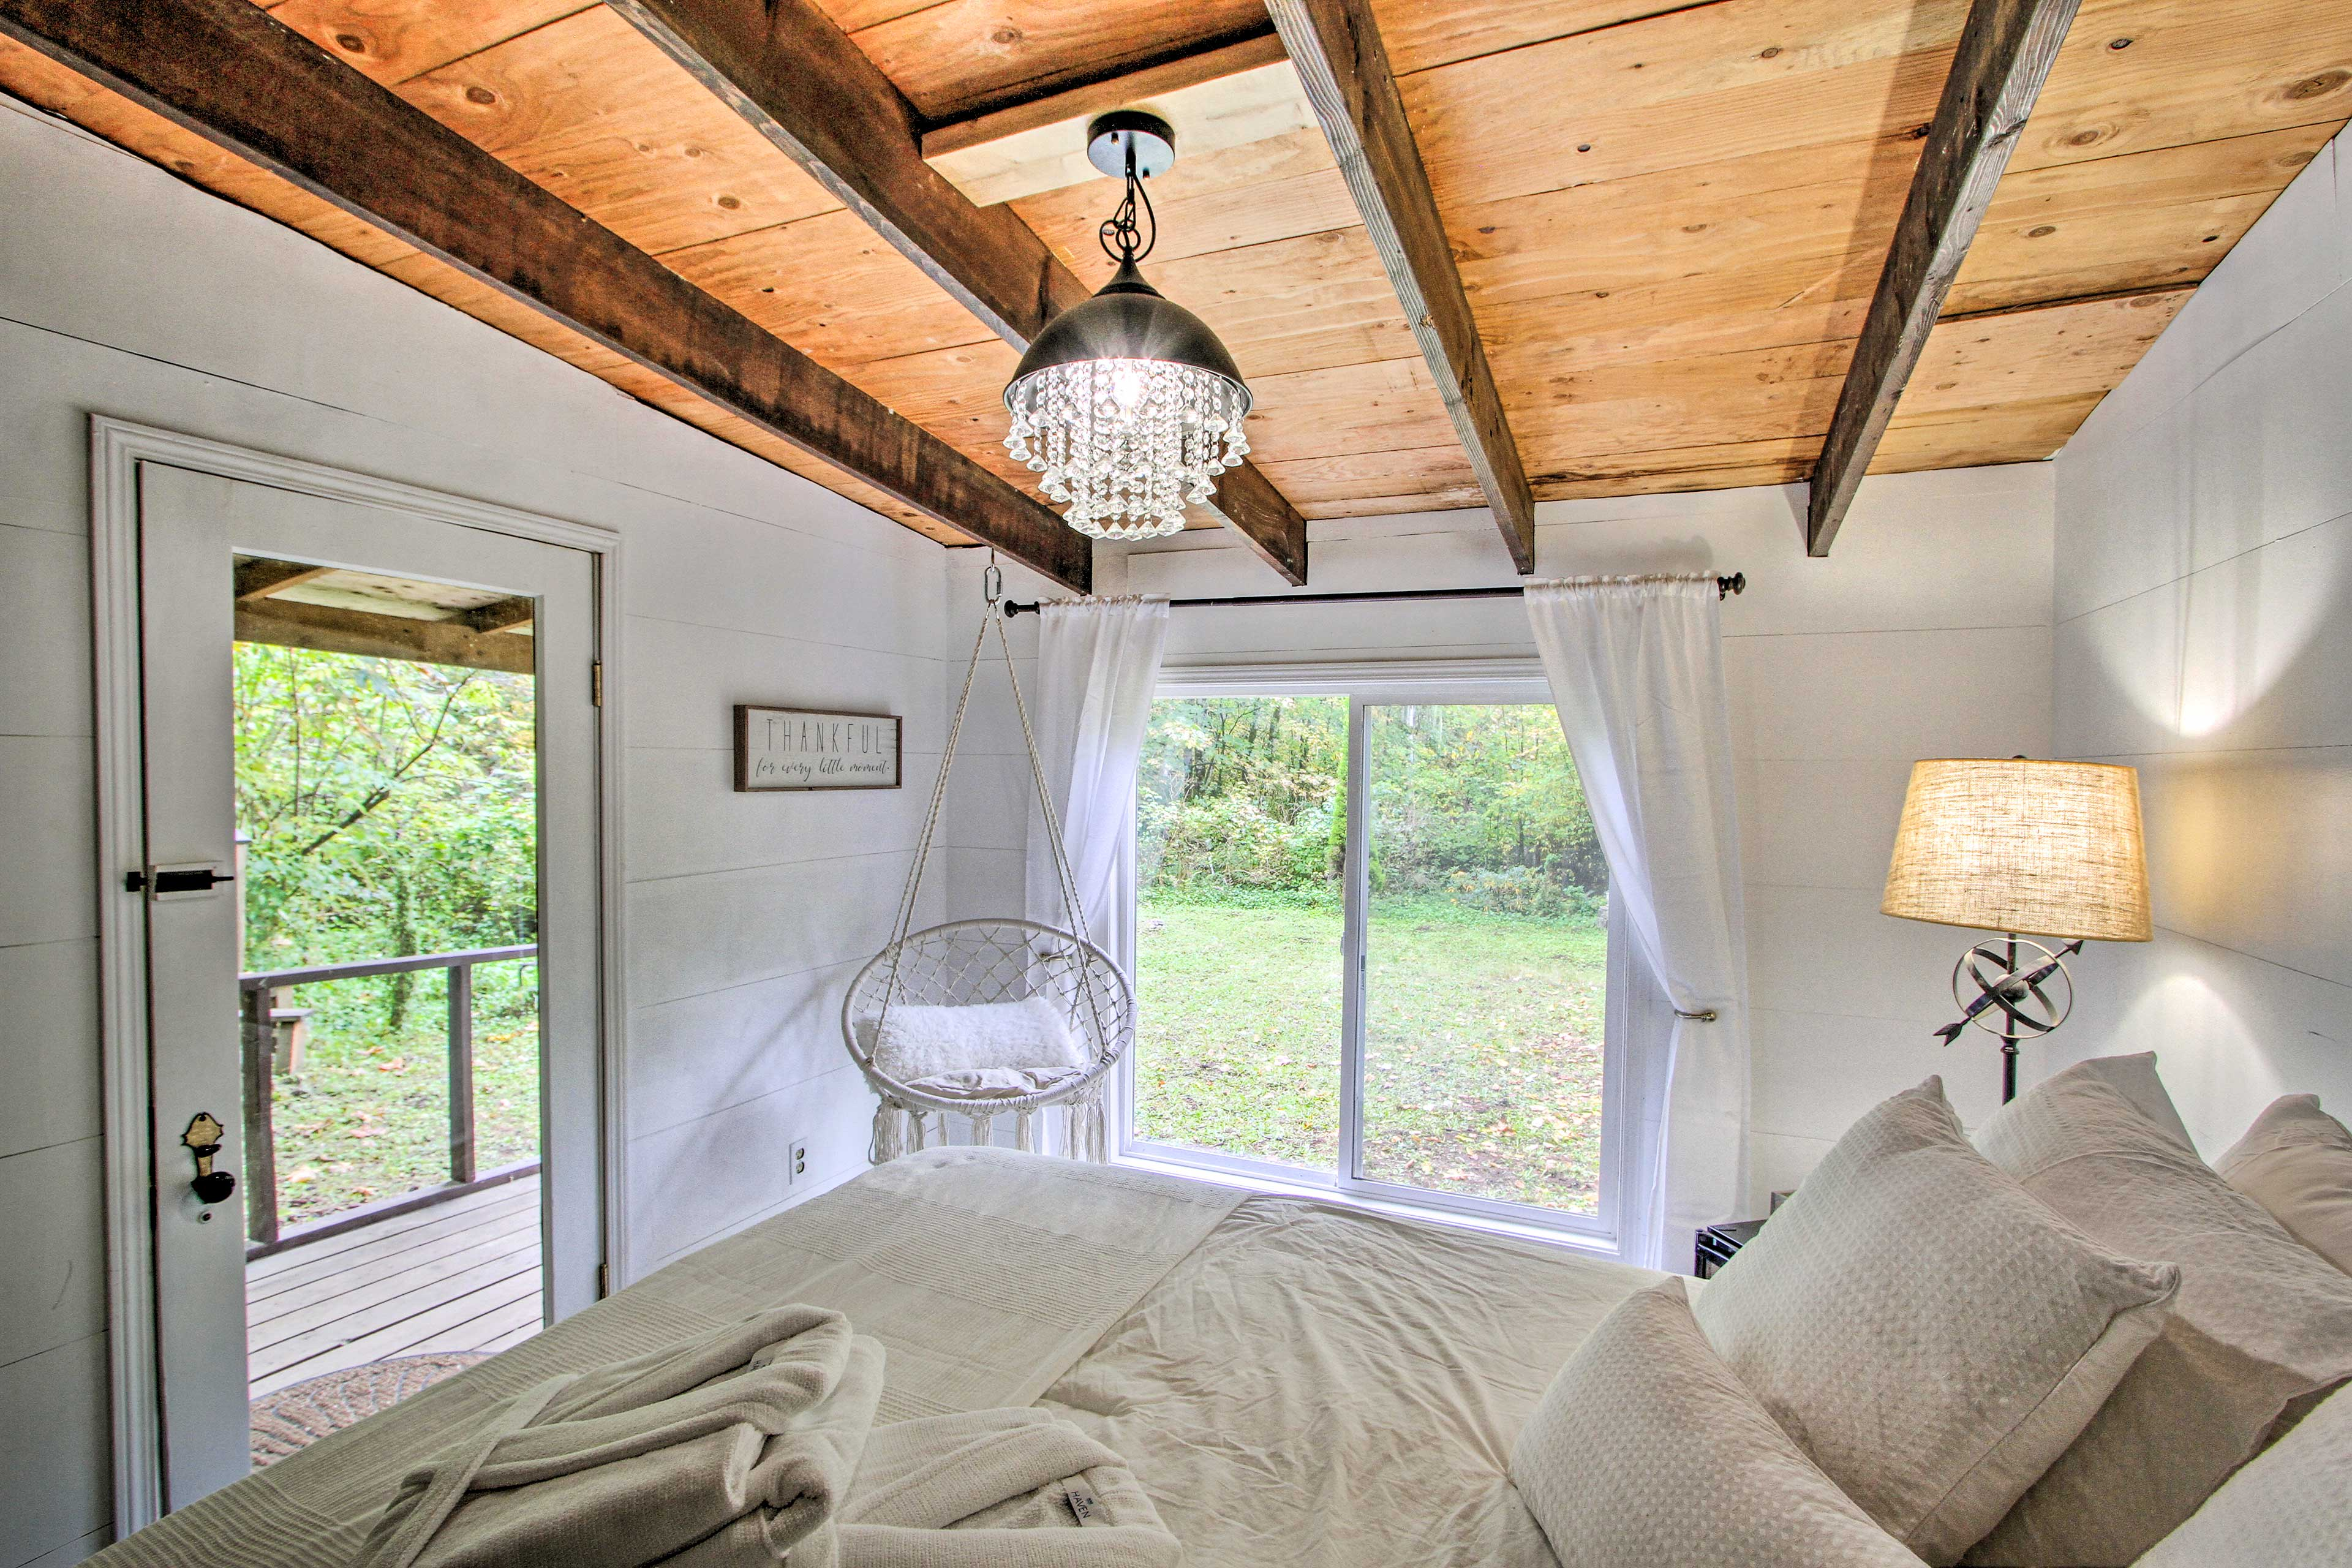 Leave behind the stresses of reality and enjoy some R&R at this property.